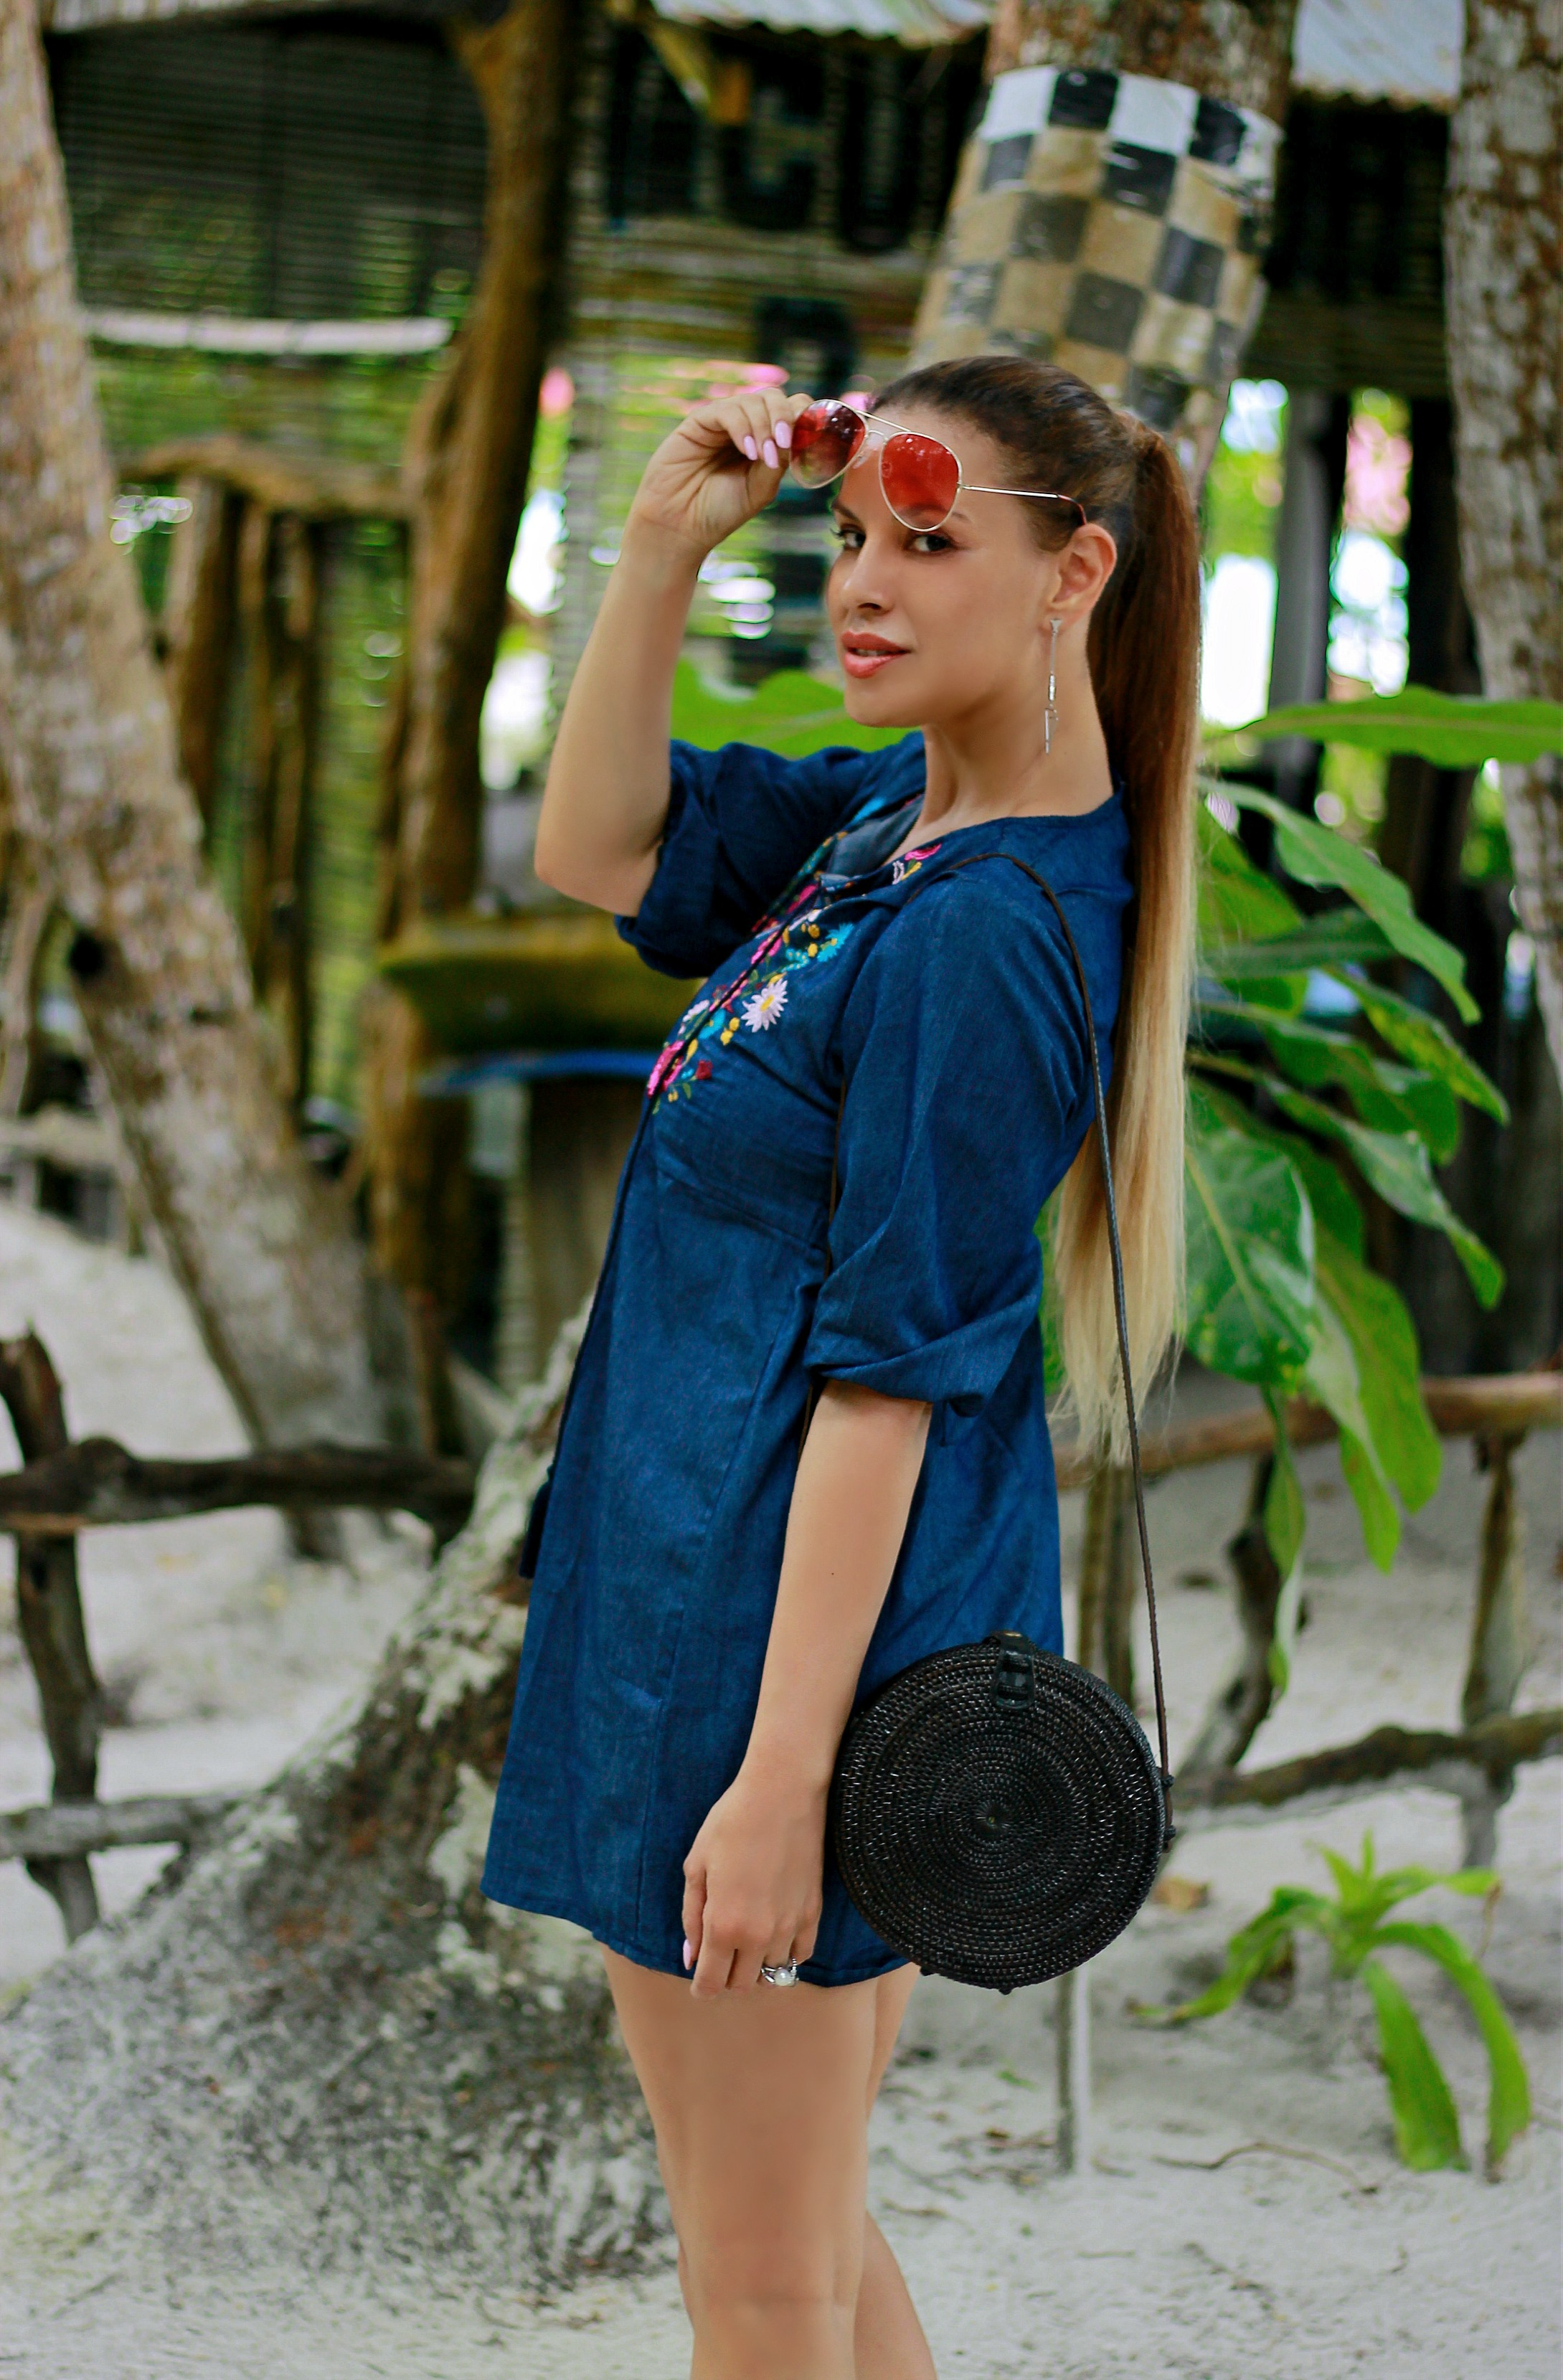 Why You Should winter travel, Tamara Chloé, Black Round Bali Bag, kei Islands, Maluku, Pasir Panjang beach, Indonesia, Embroidered denim dress6